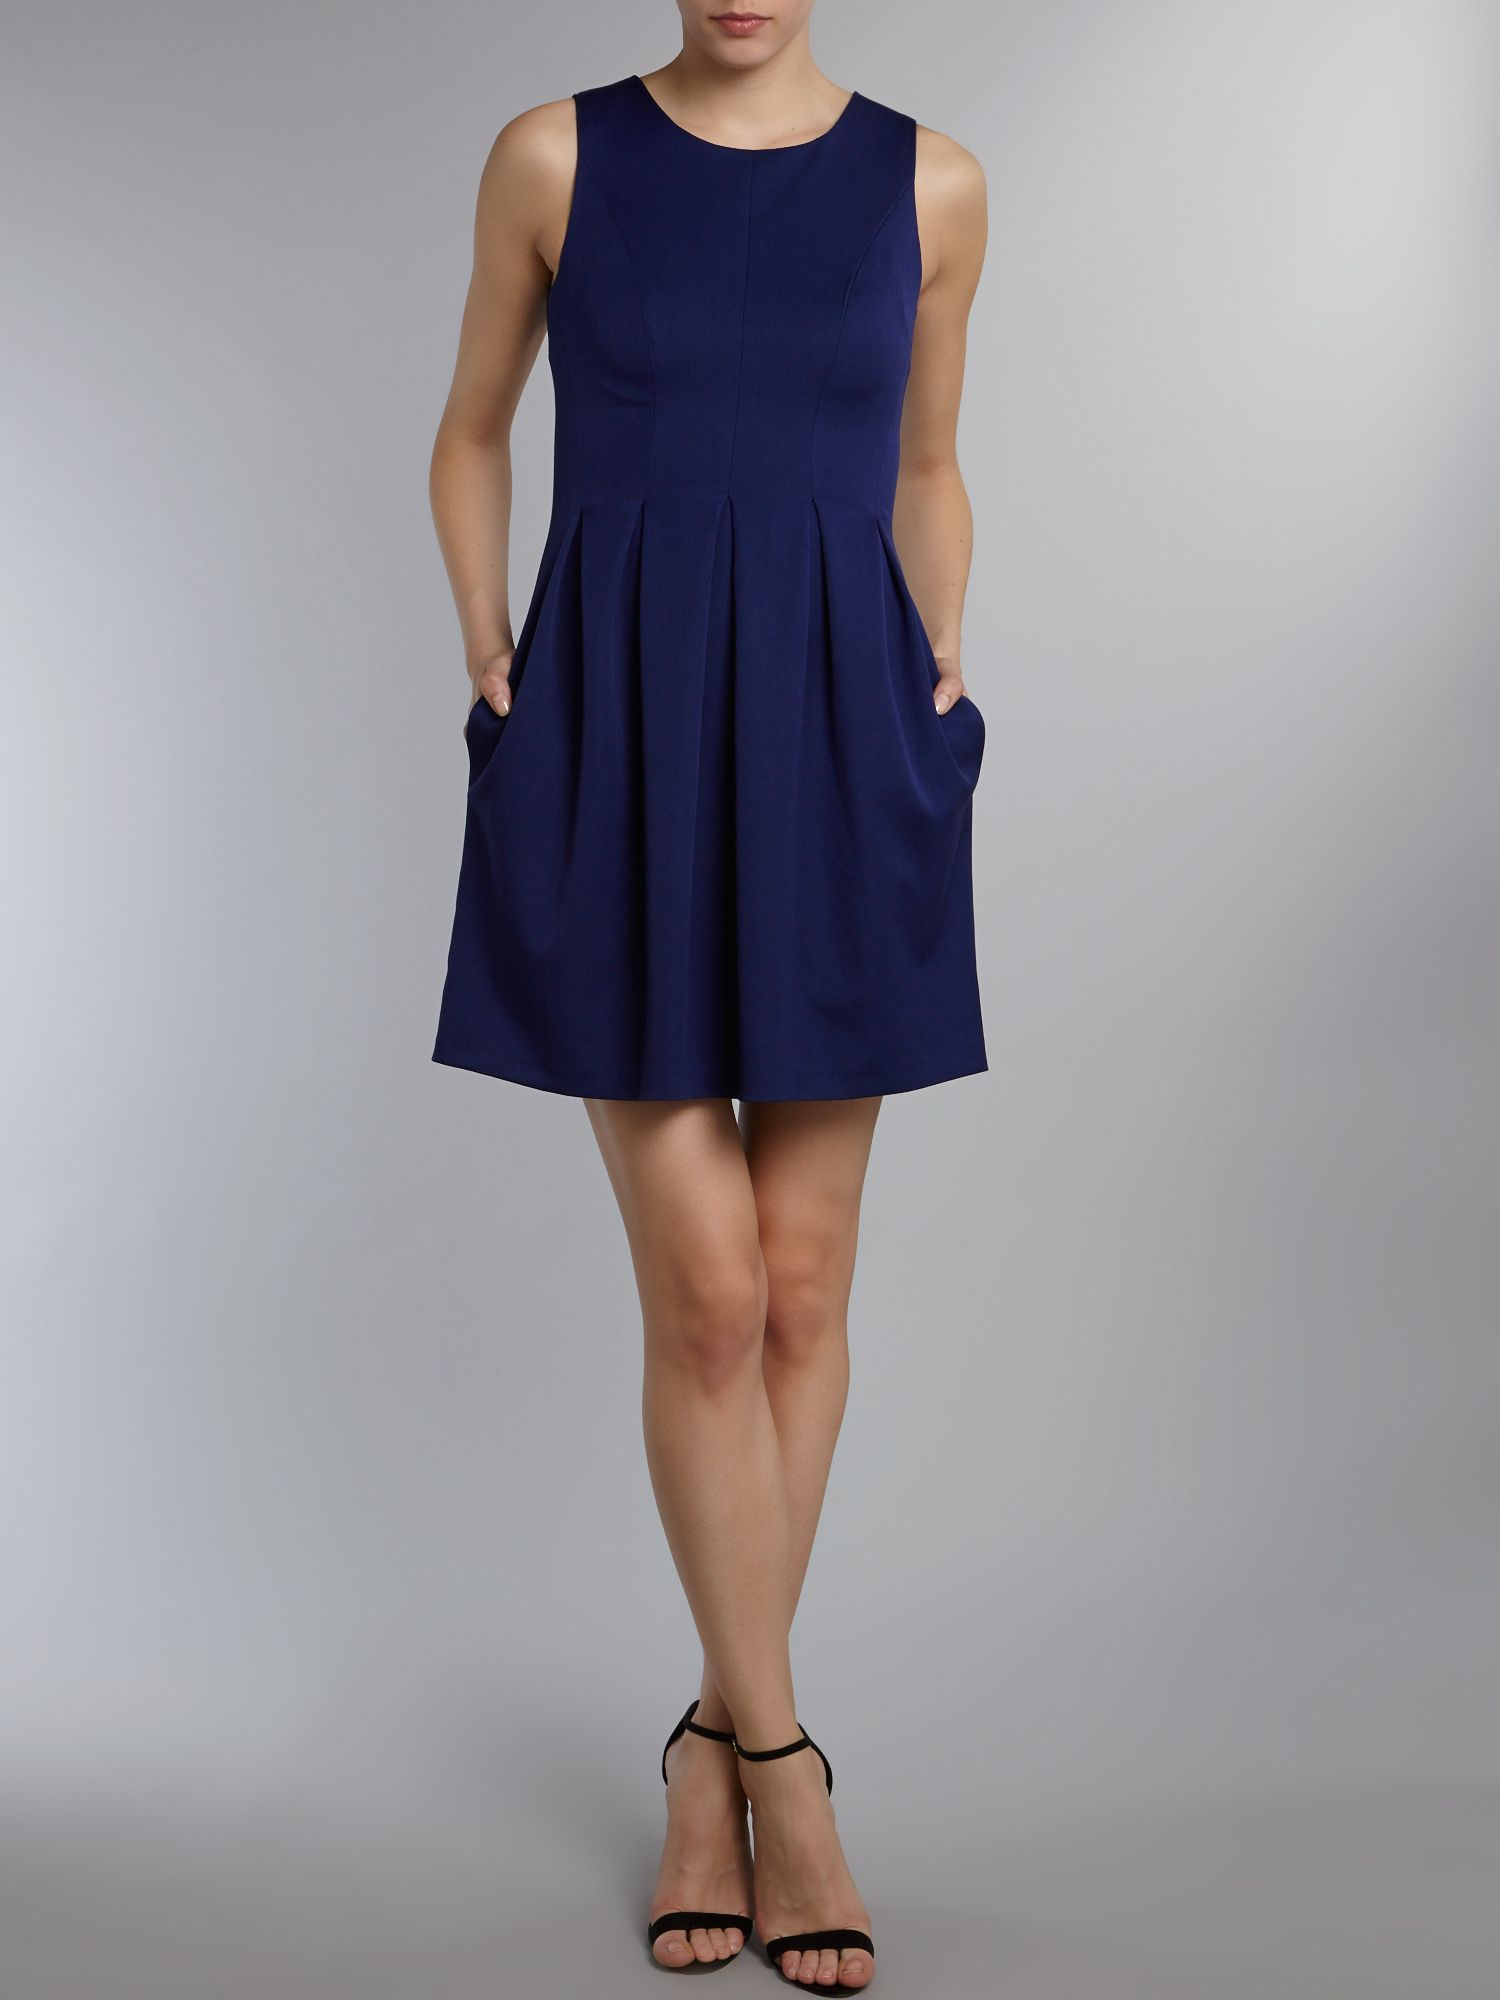 Panel sleeveless dress